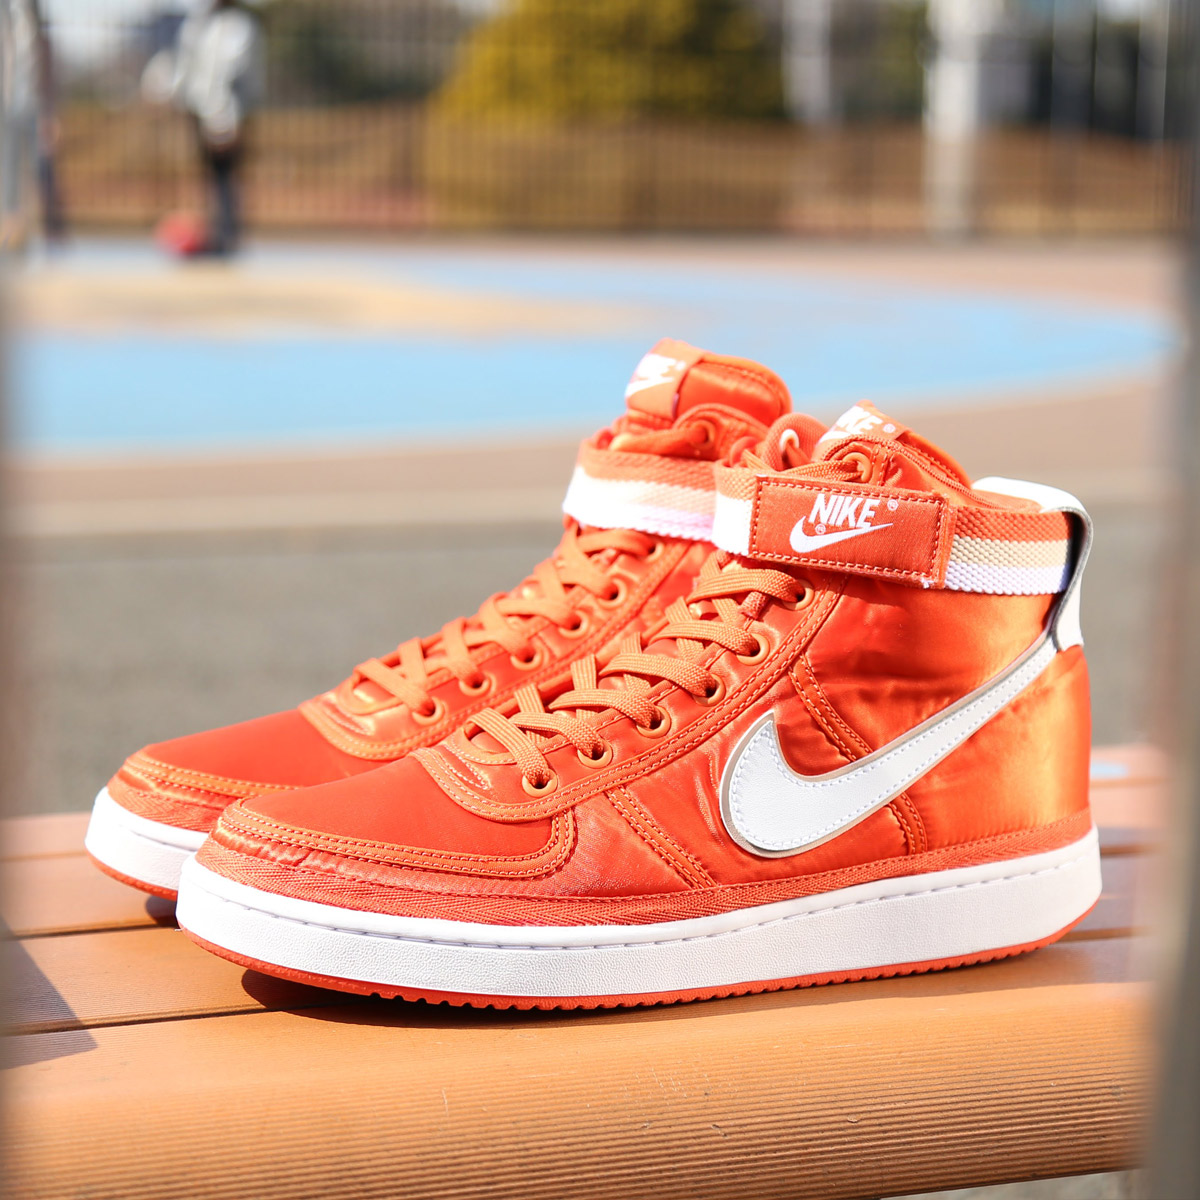 uk availability 761fd 04925 NIKE VANDAL HIGH SUPREME (ナイキバンダルハイサプリーム) (VINTAGE  CORALWHITE-WHITE-PARTICLE BEIGE) 18SP-S